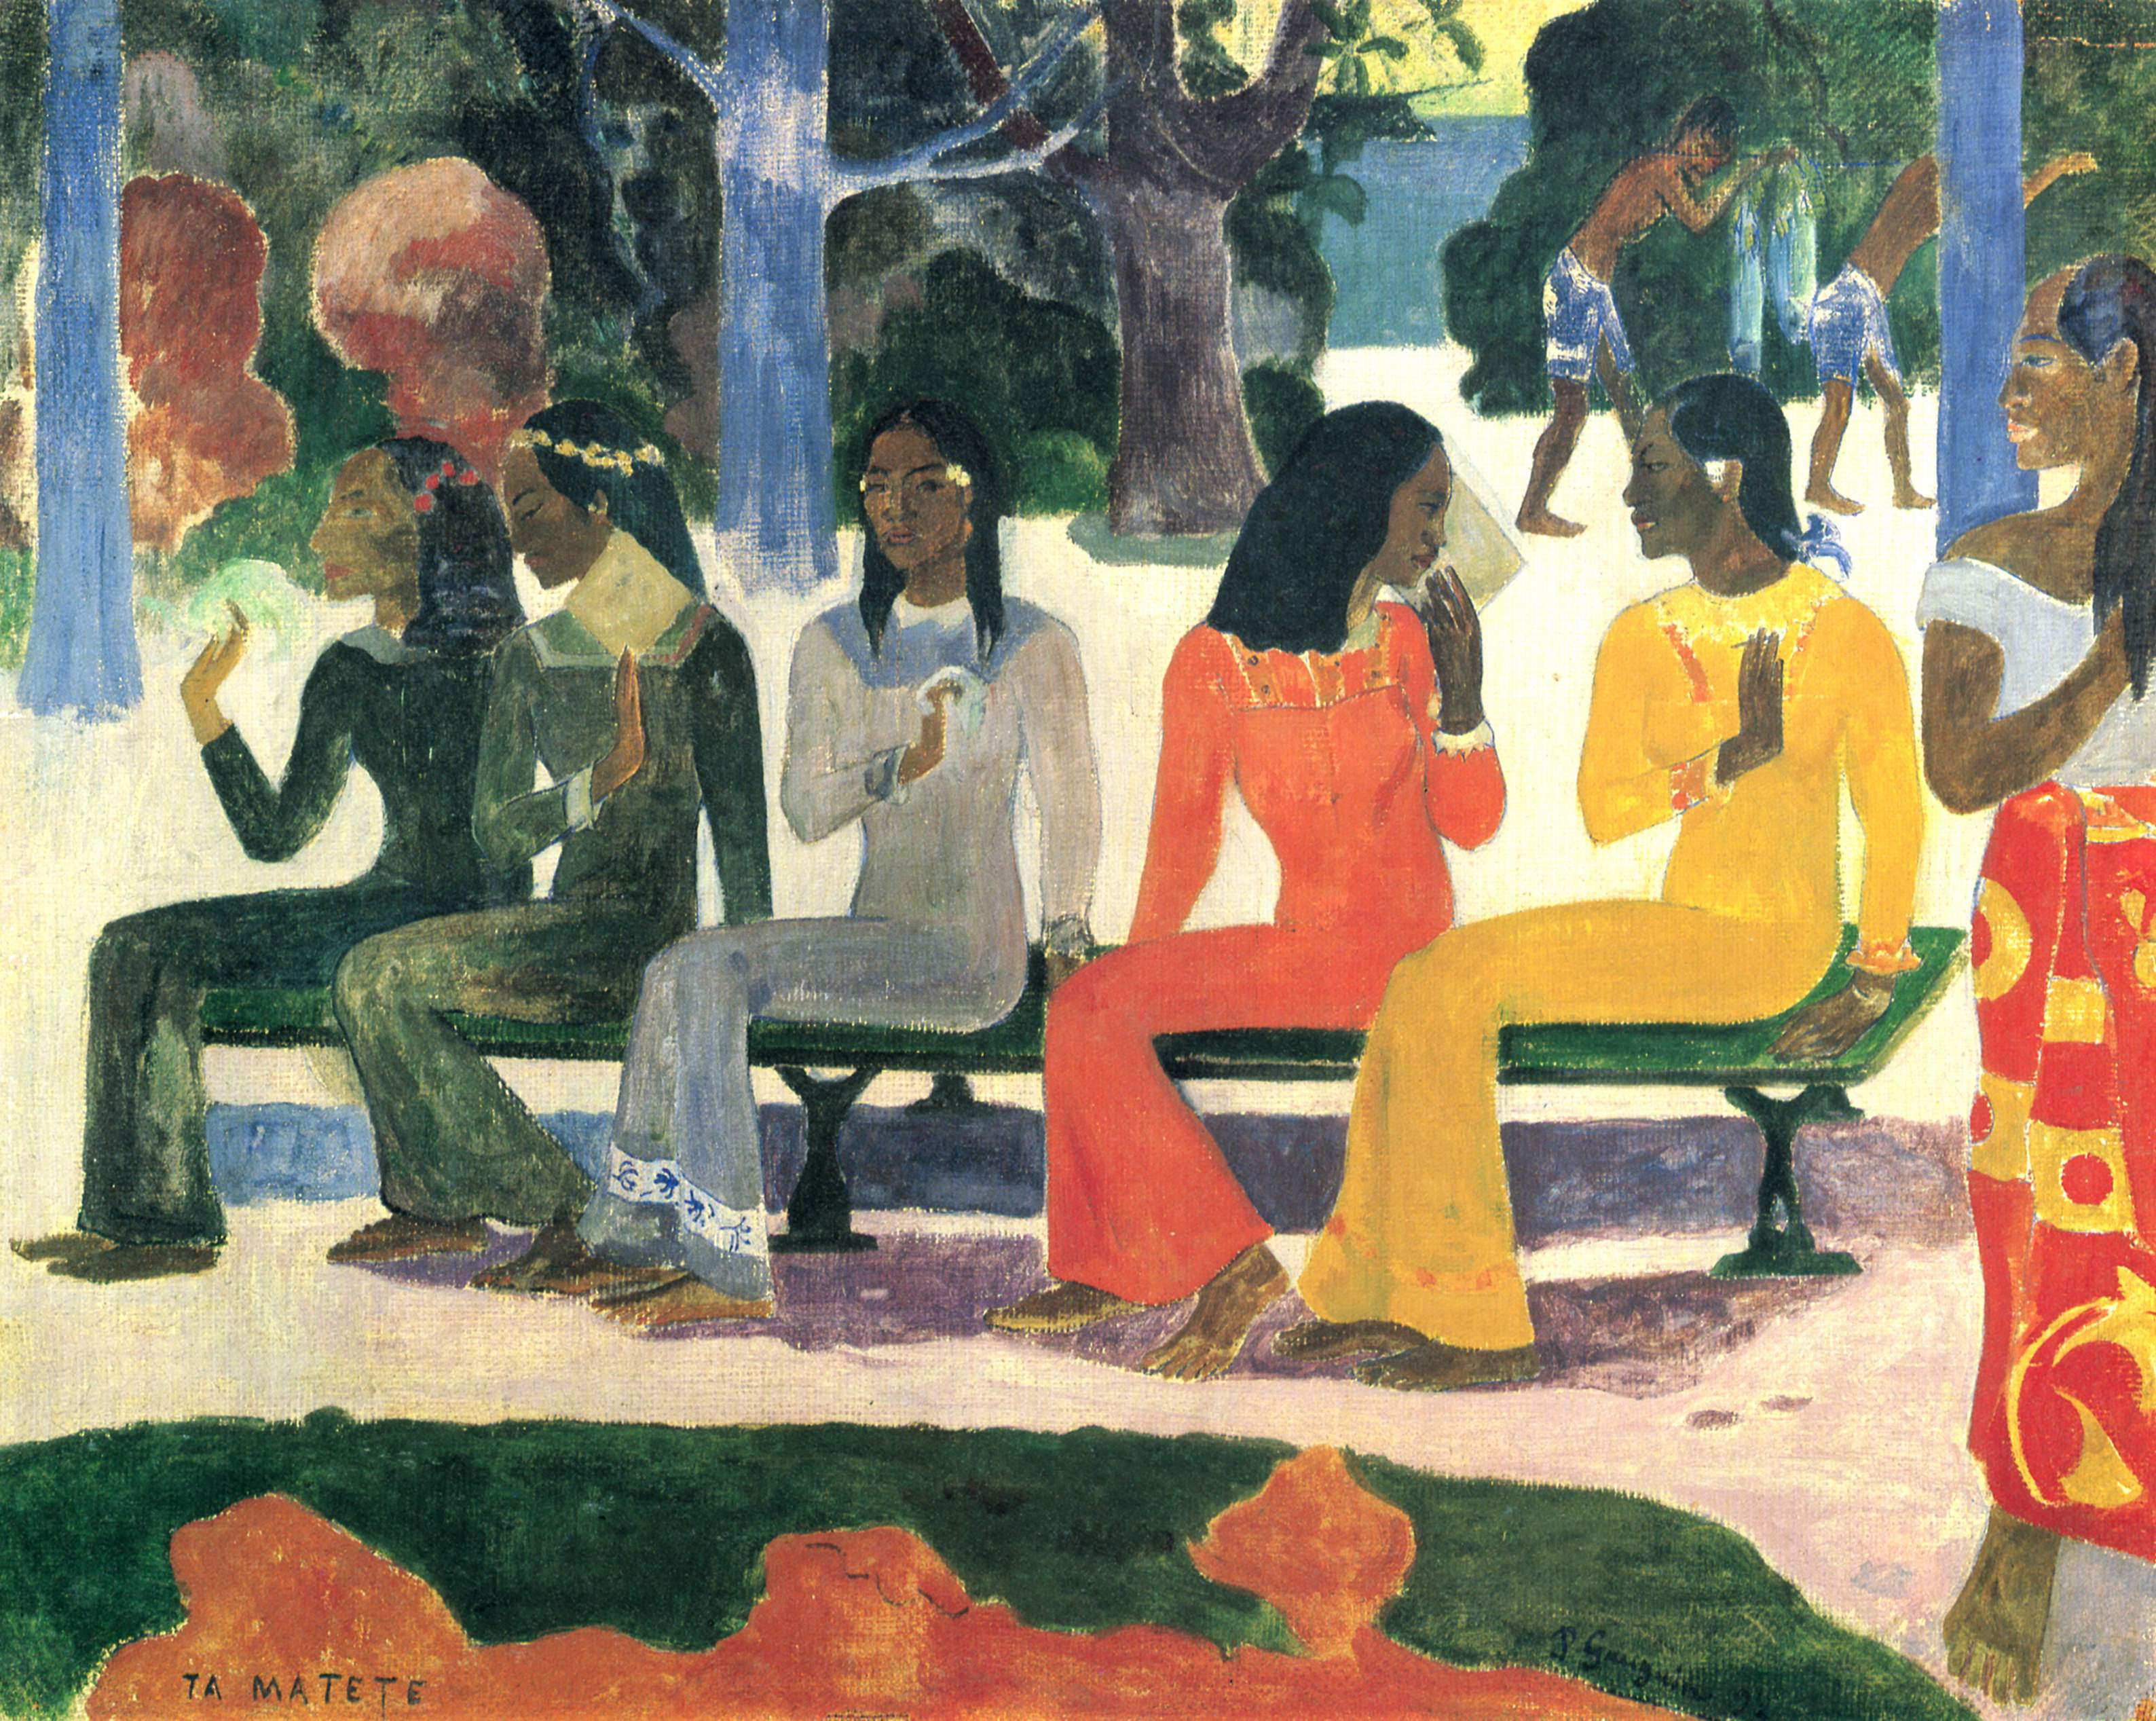 Te Matete By Paul Gauguin